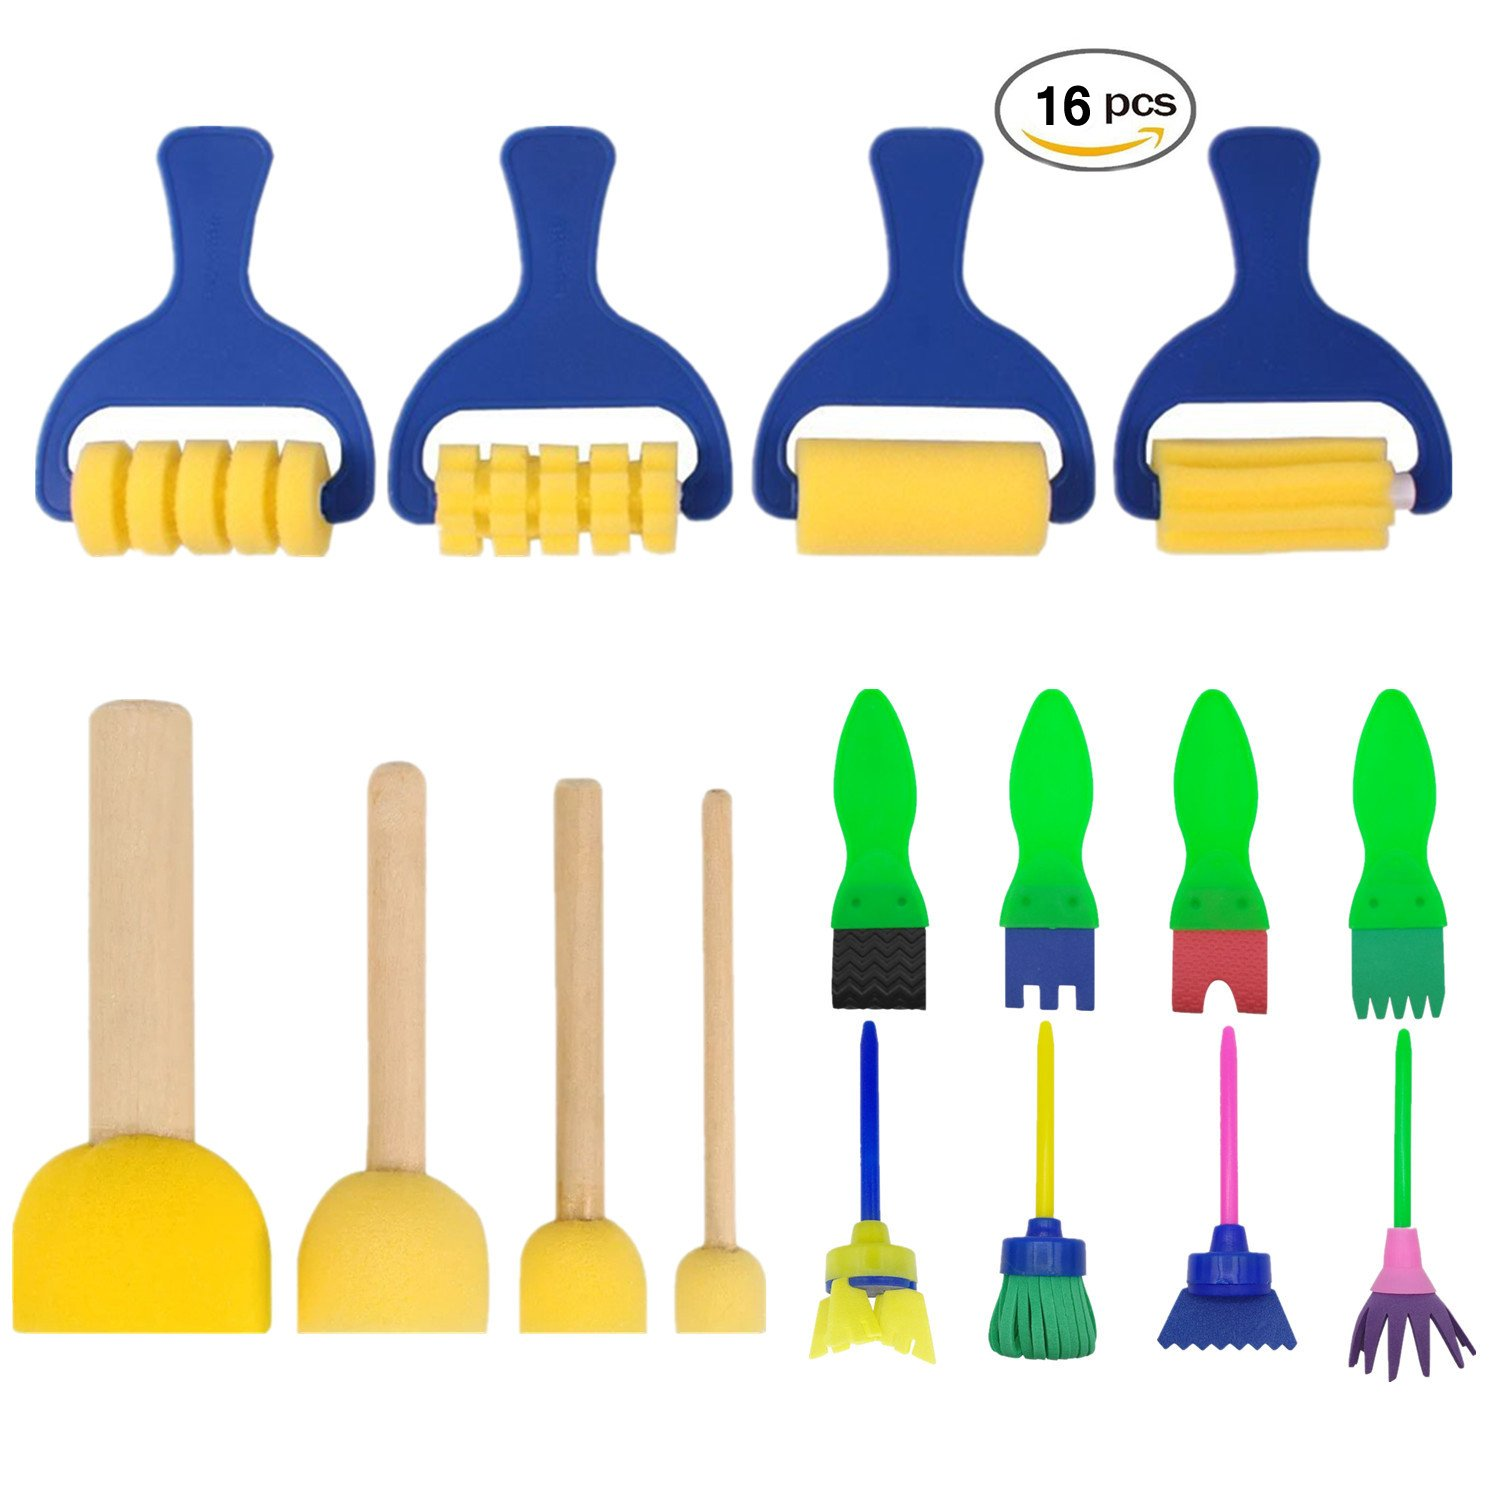 YOUR GALLERY 16 Pack Early Learning Mini Flower Foam Brushes Sponge Painting Brushes Craft Brushes Set for Kids